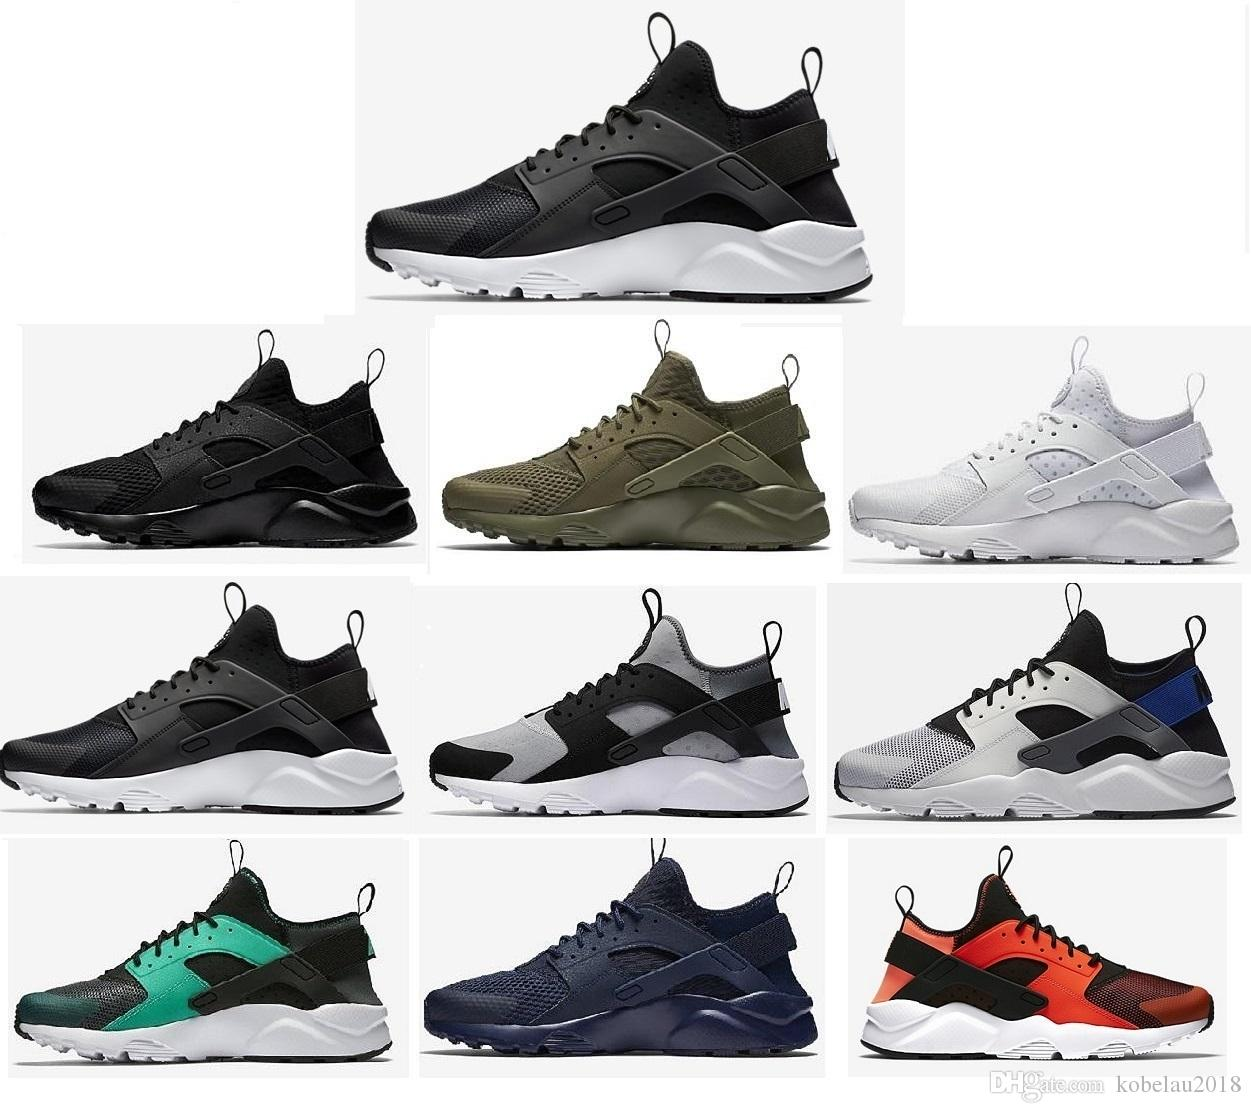 discount new arrival low price fee shipping online Newest Huarache 6 Running Shoes 2018 Men Casual Women Air Mesh Huarache 4 Boost Outdoor Athletic Sport Hiking Sneakers Shoes 36-45 buy cheap 2015 bLcHd4kFhU